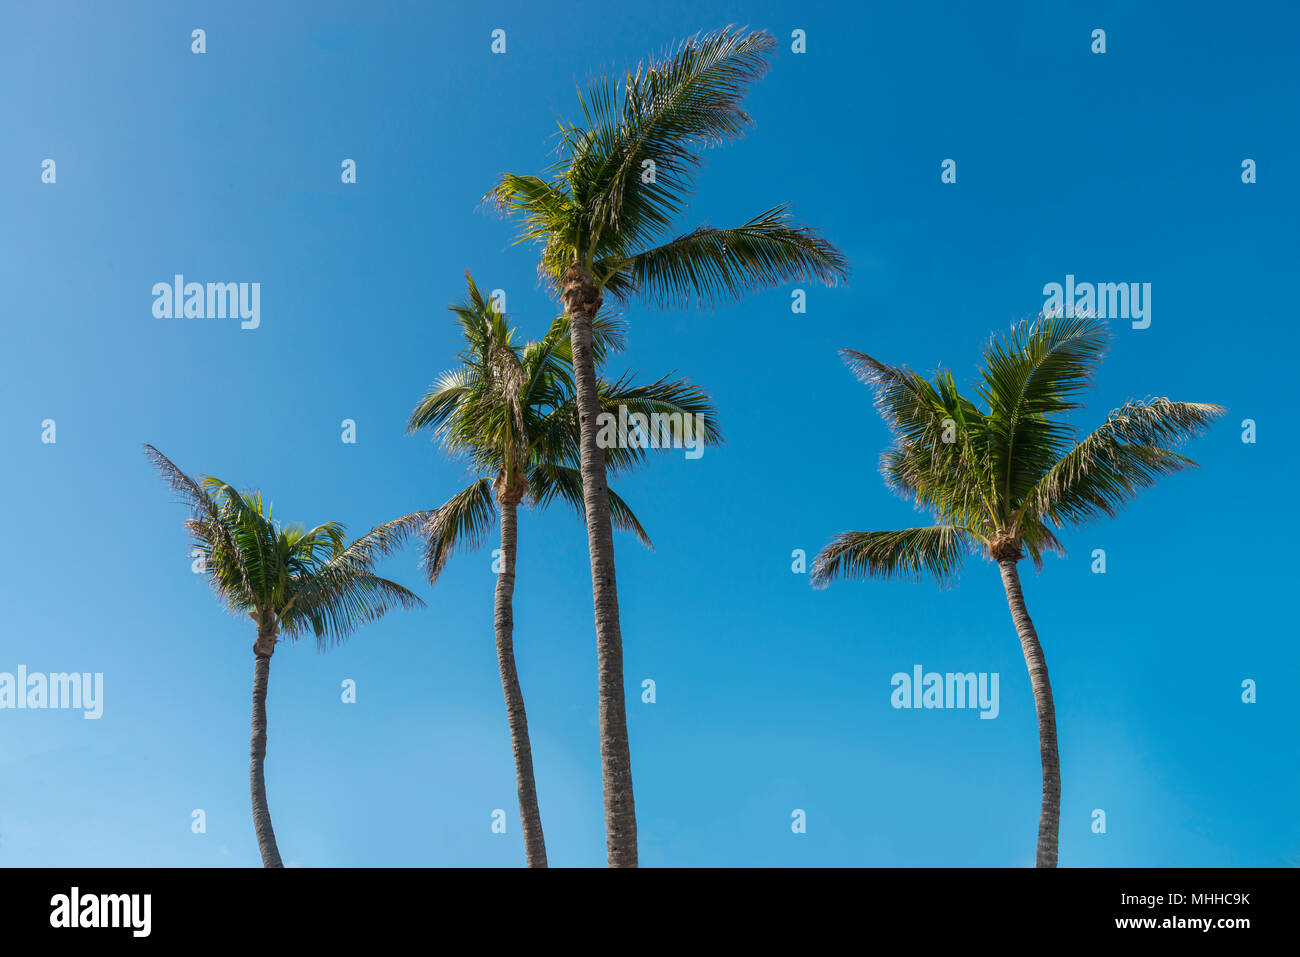 Four Palm Trees Blowing In The Wind - Stock Image